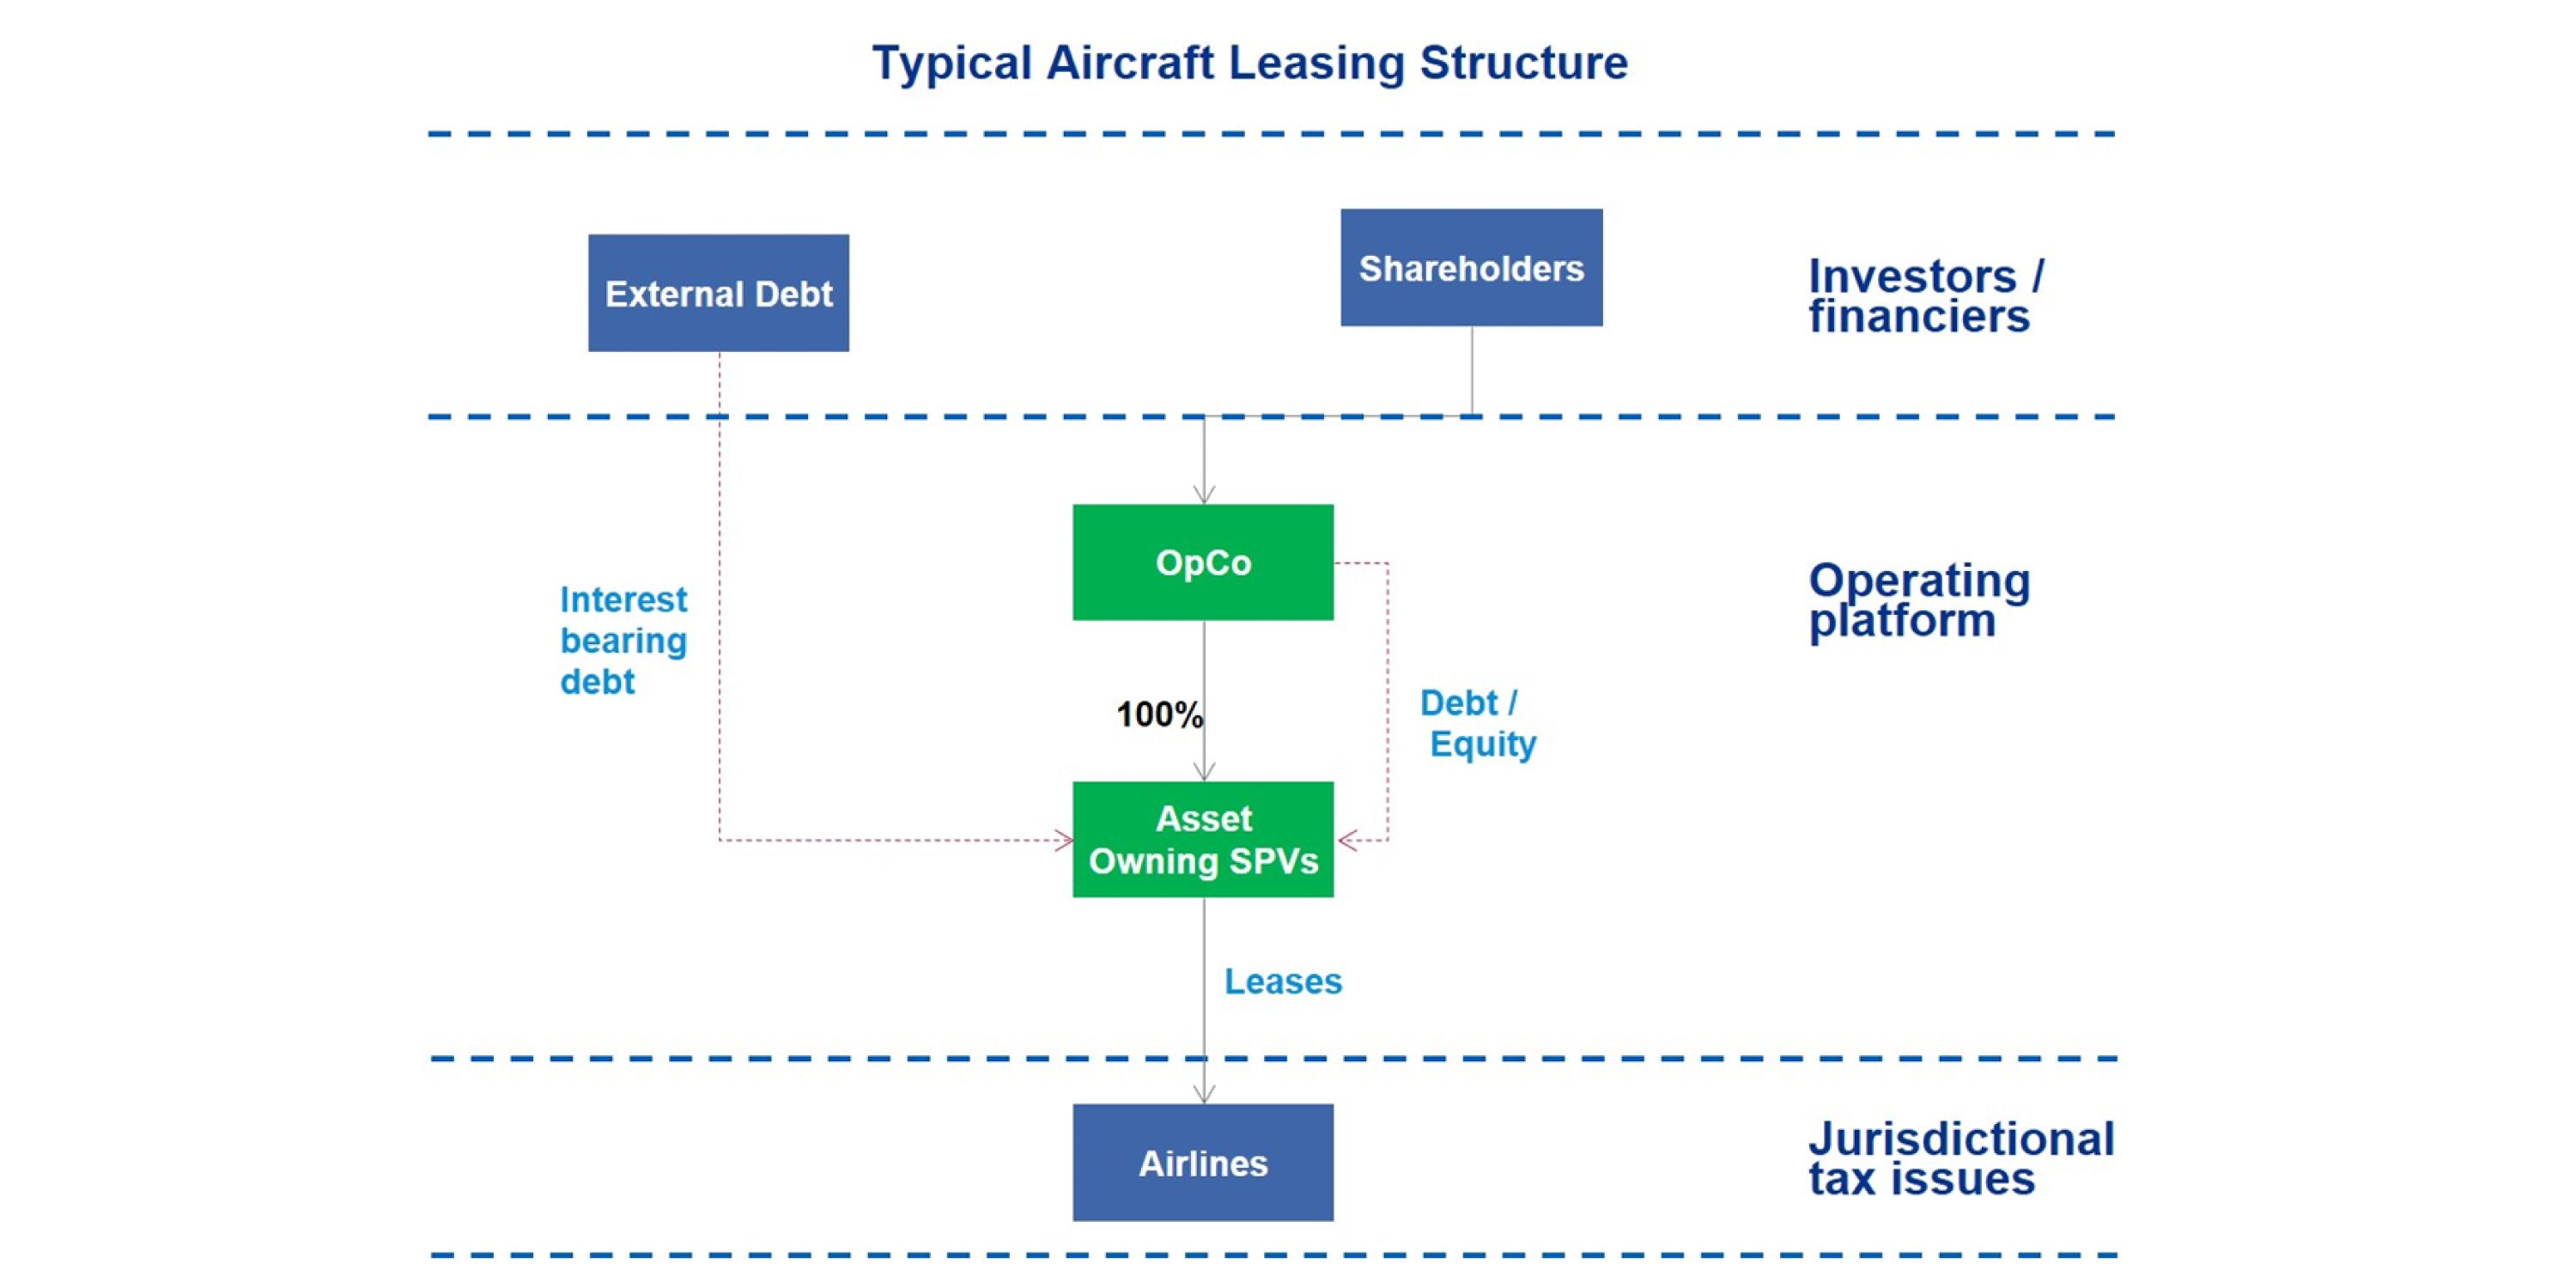 Typical aircraft leasing structure